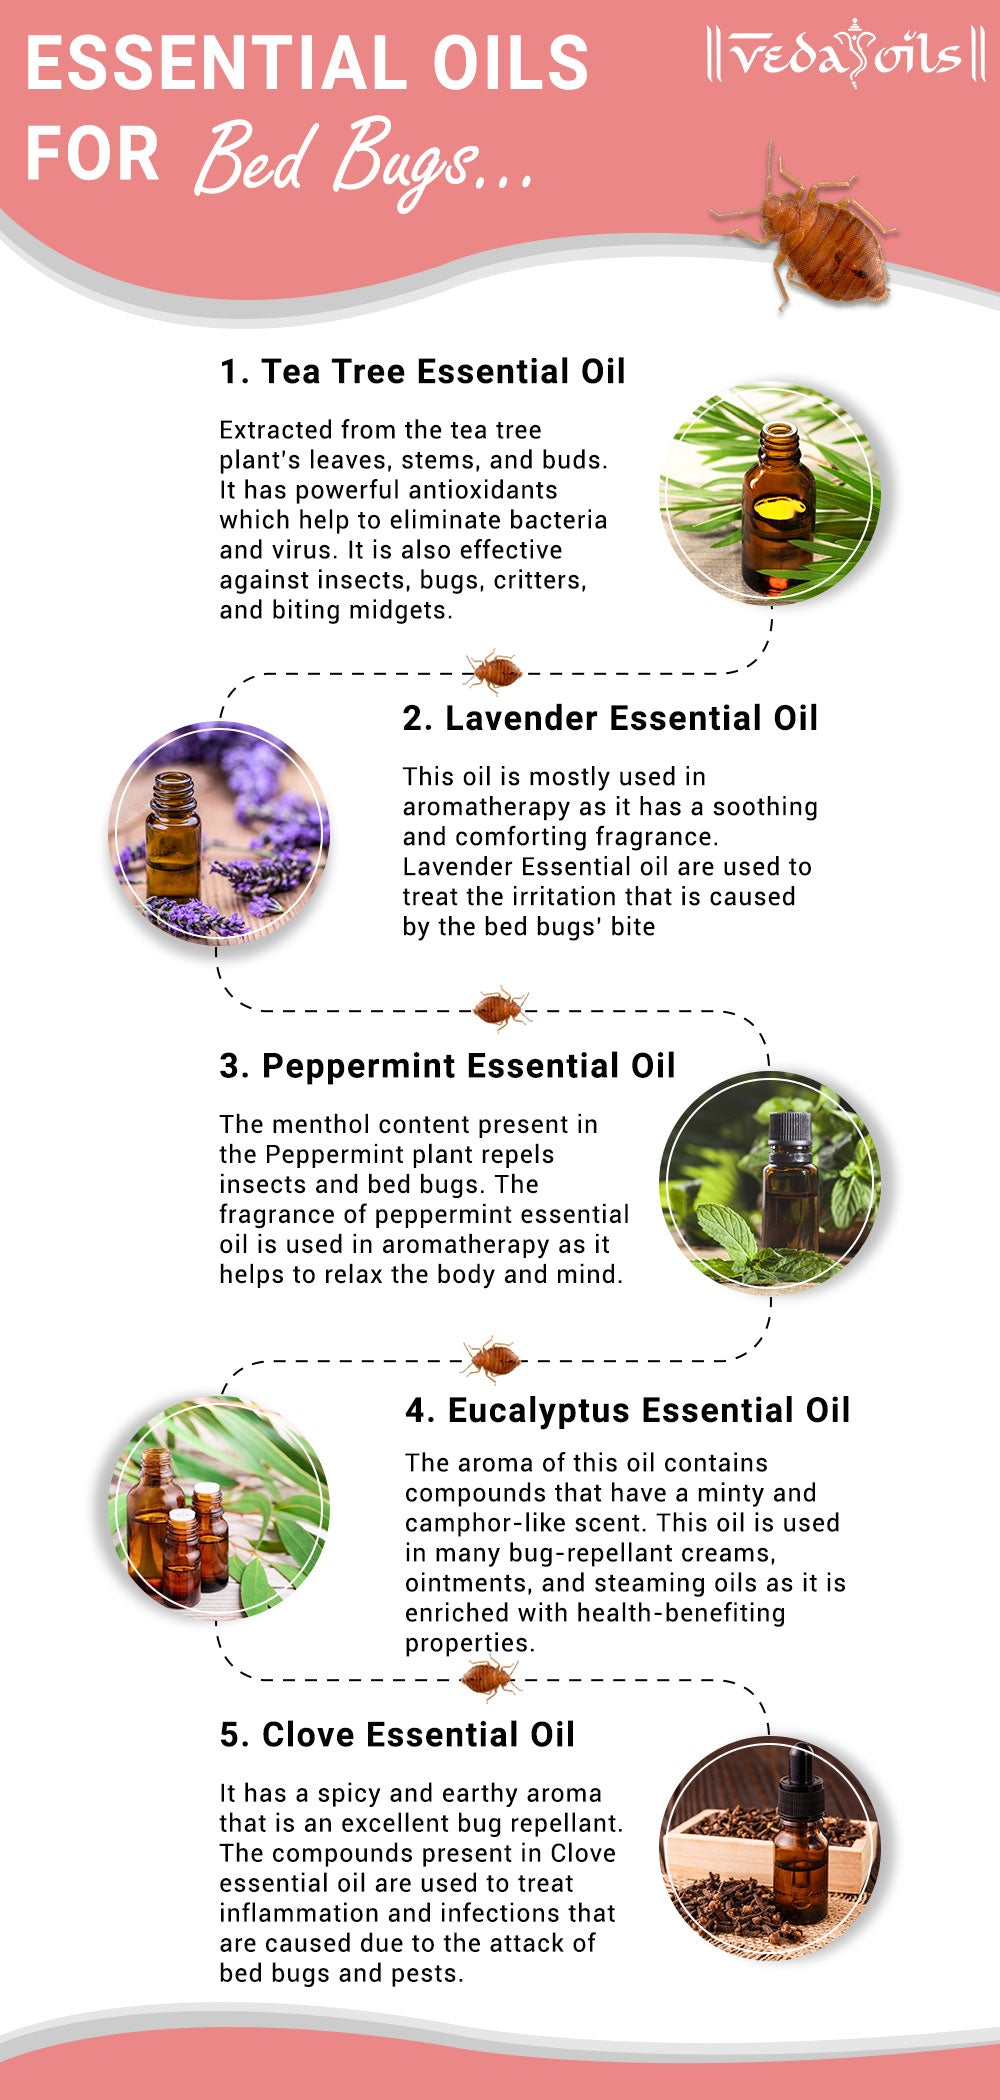 Essential Oils for Bed Bugs Prevention - How to Kill Bed Bugs